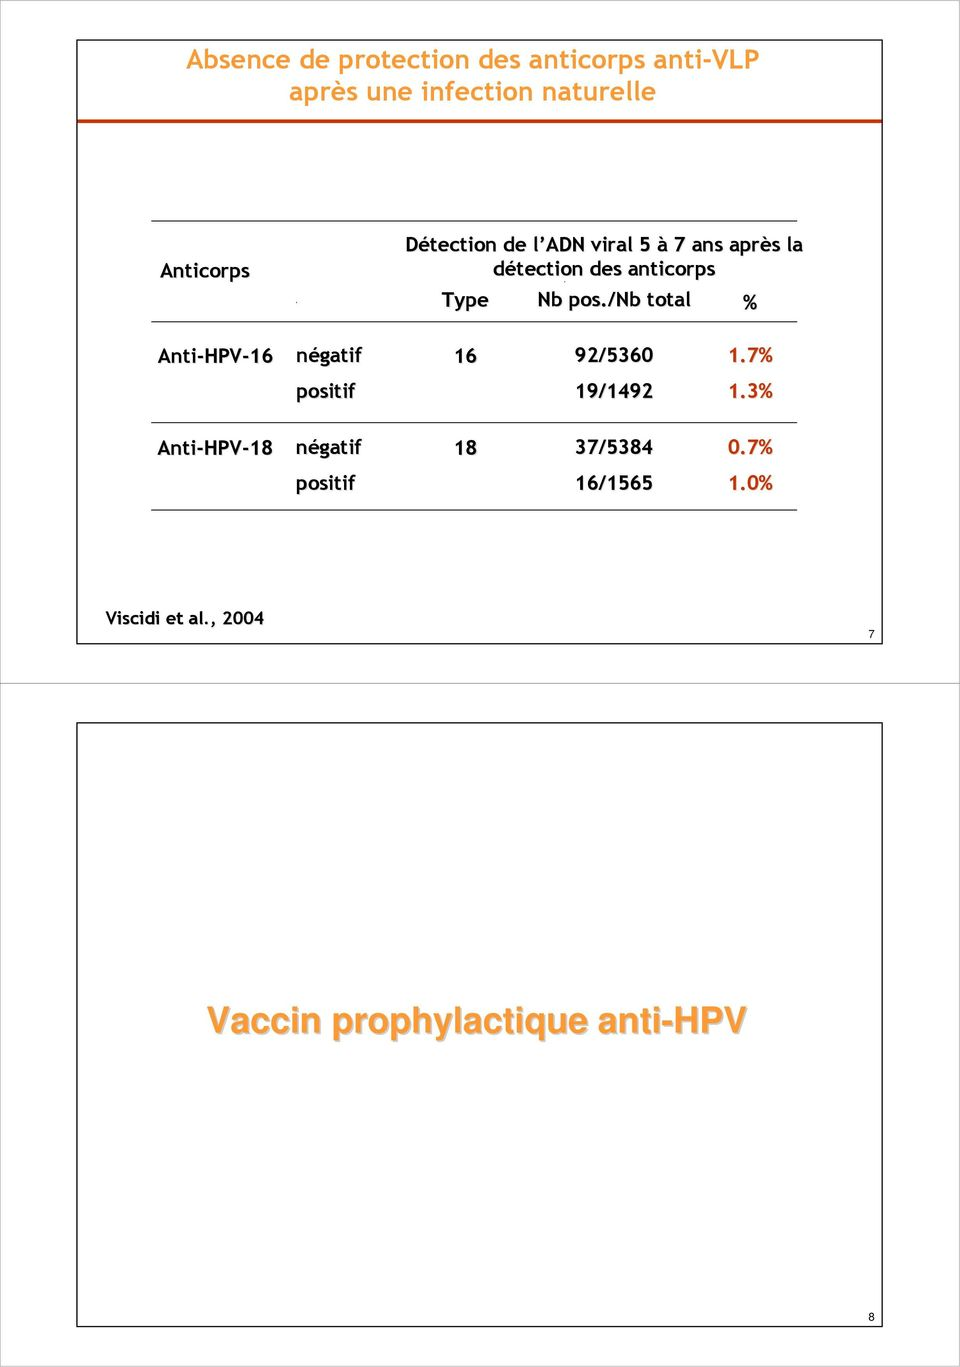 /nb total % Anti-HPV HPV-16 négatif 16 92/5360 positif 19/1492 1.7% 1.